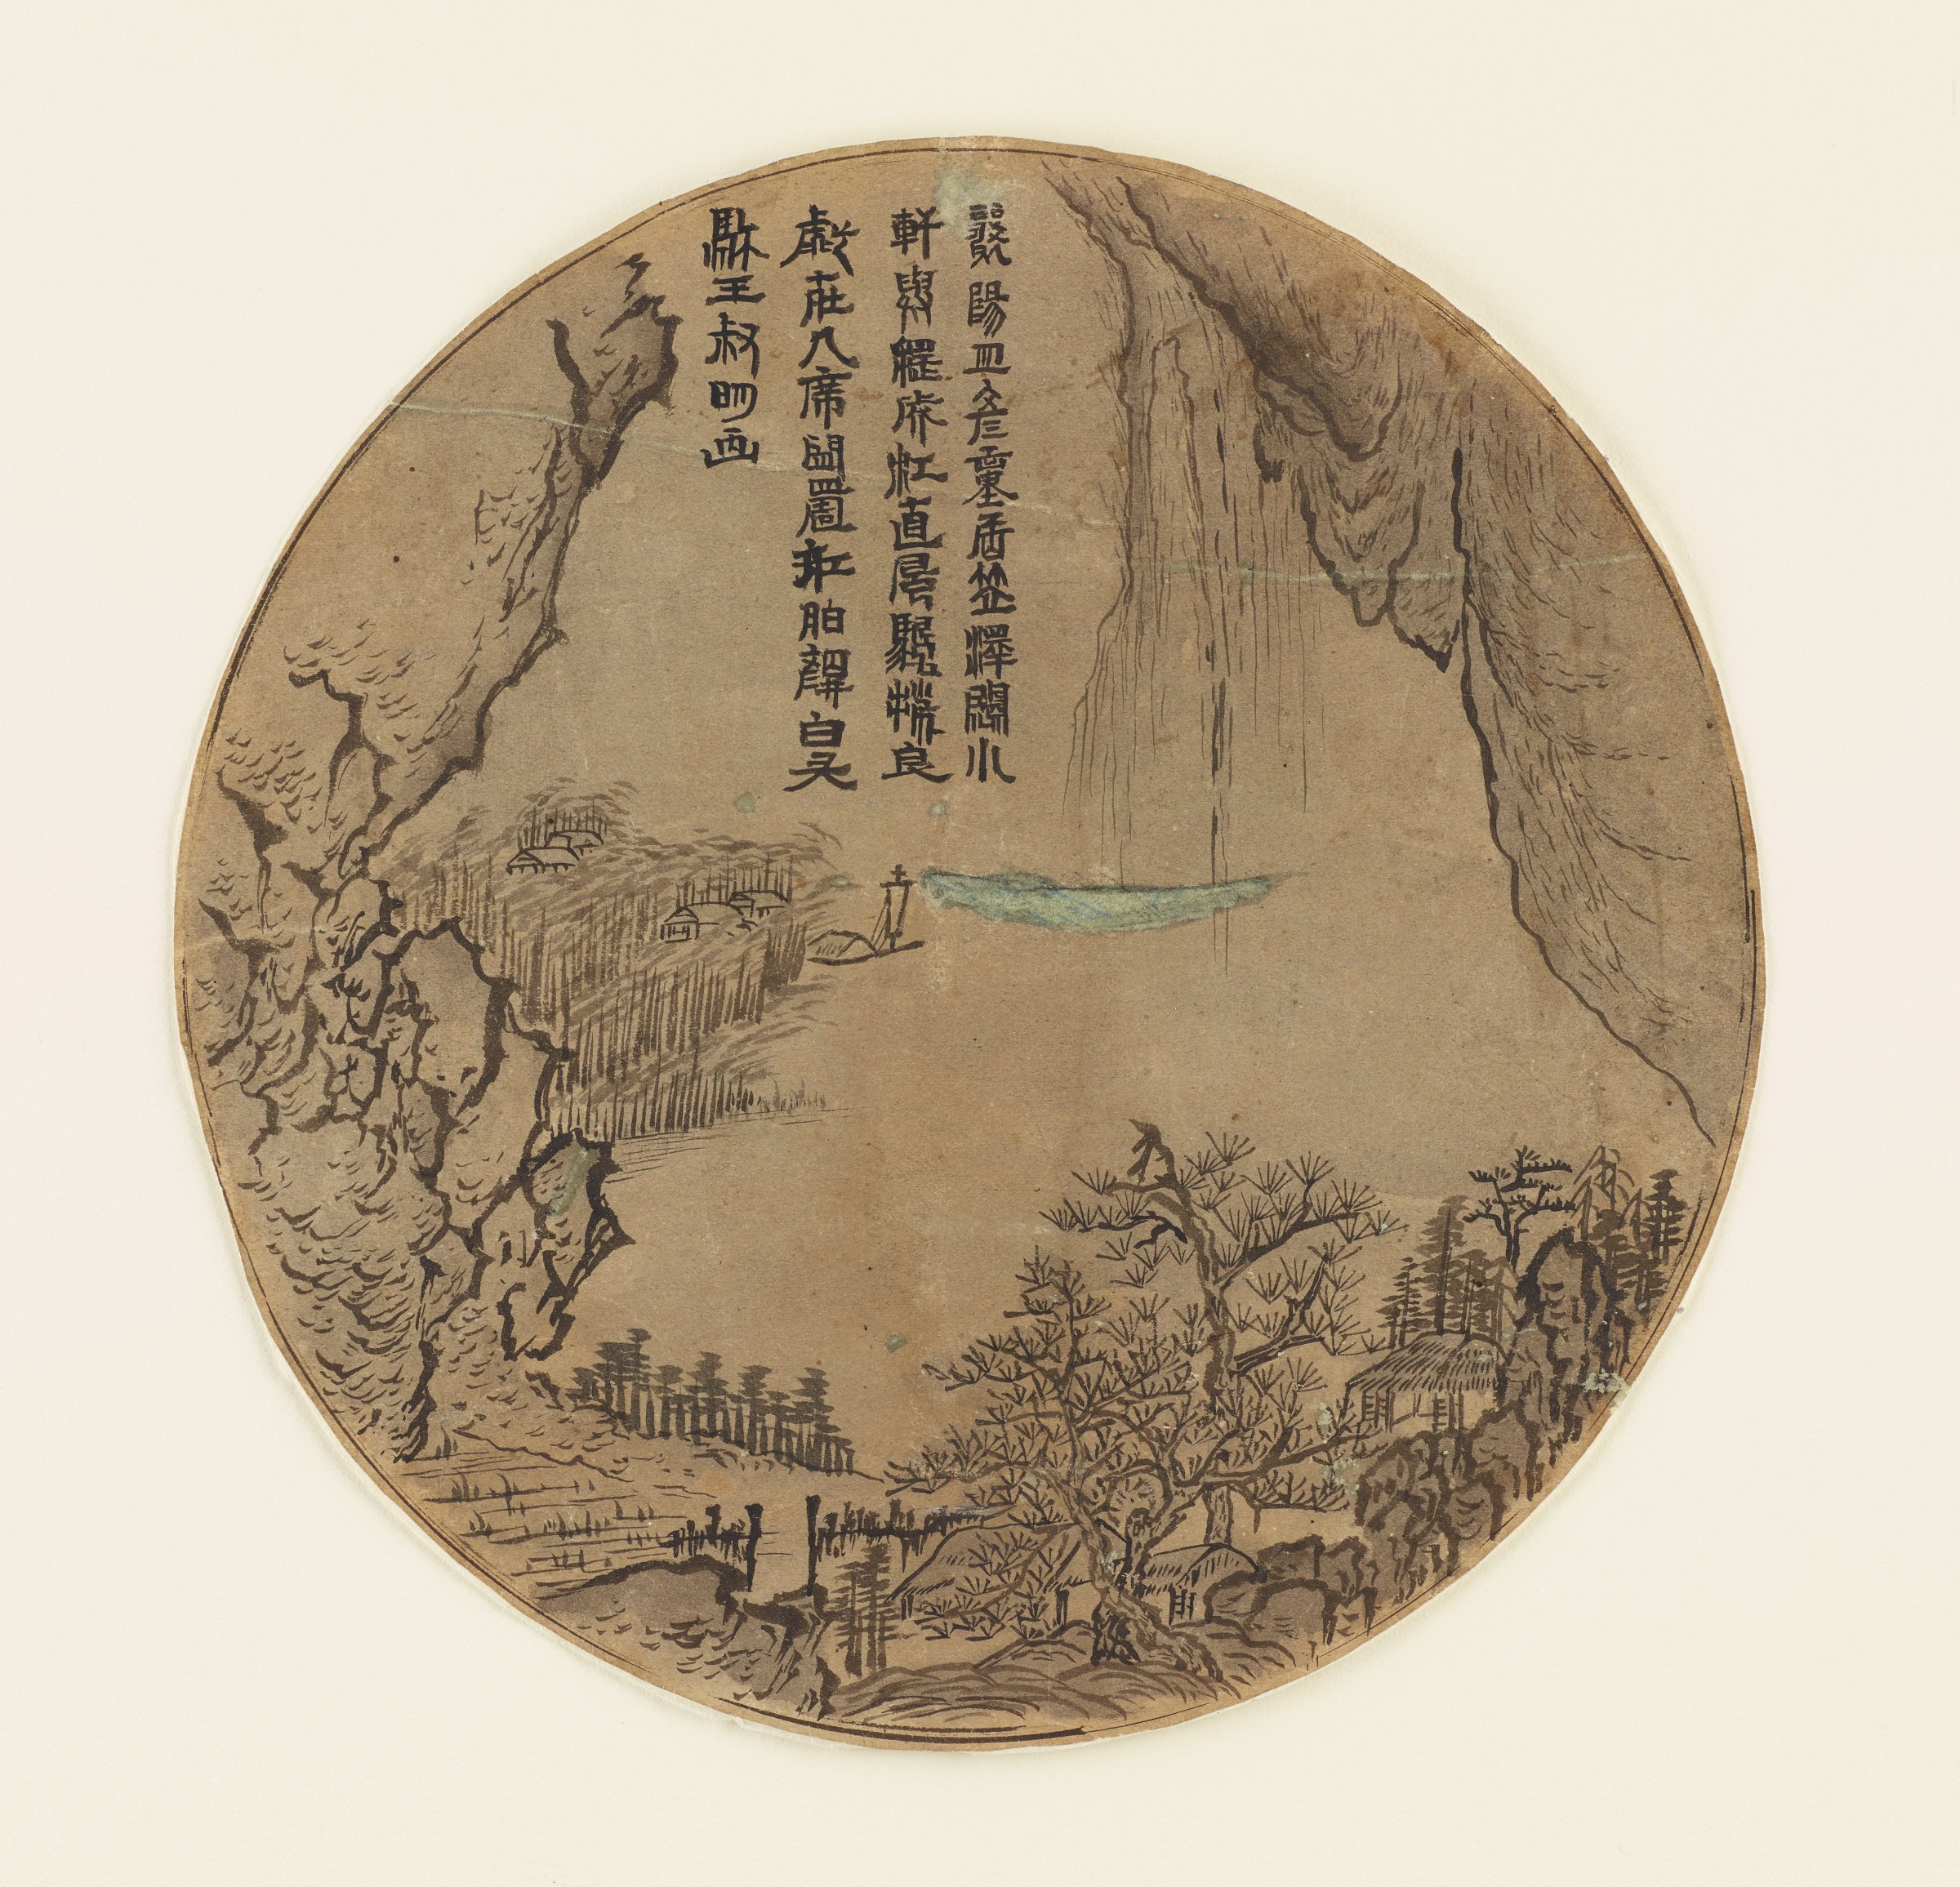 Landscape with Sailboat on a River in Round Fan Format